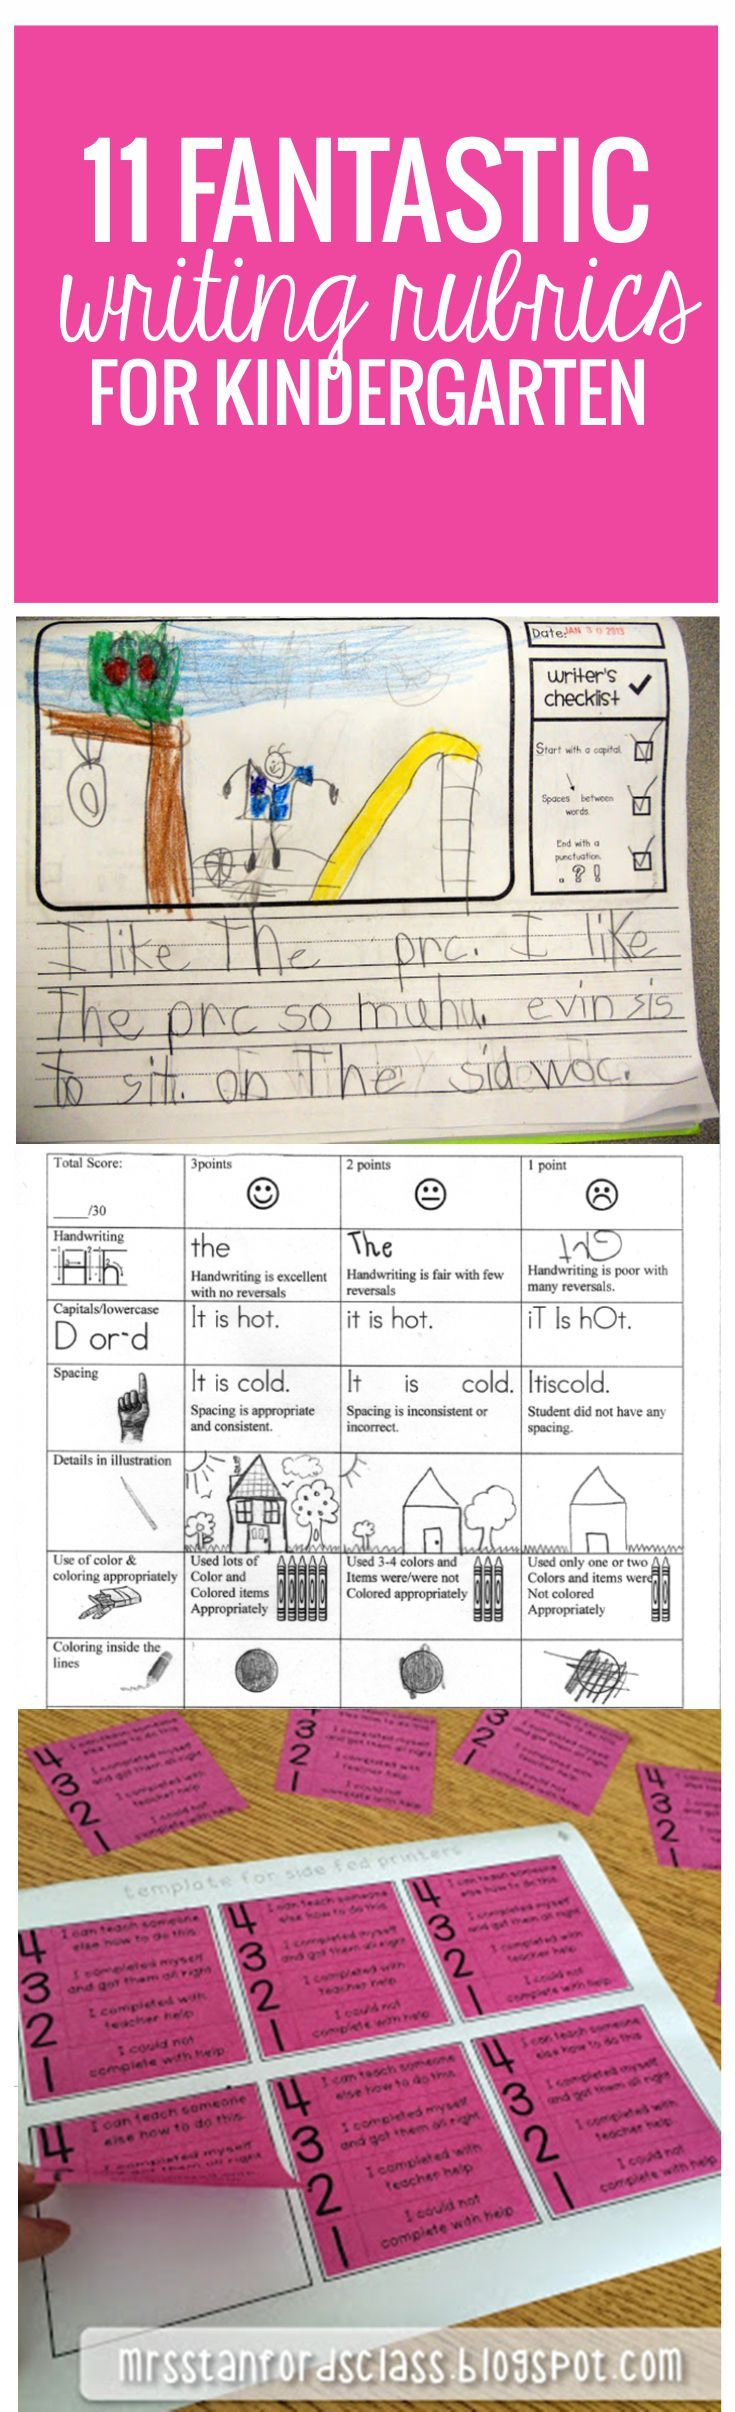 11 Fantastic Writing Rubrics For Kindergarten | Miss